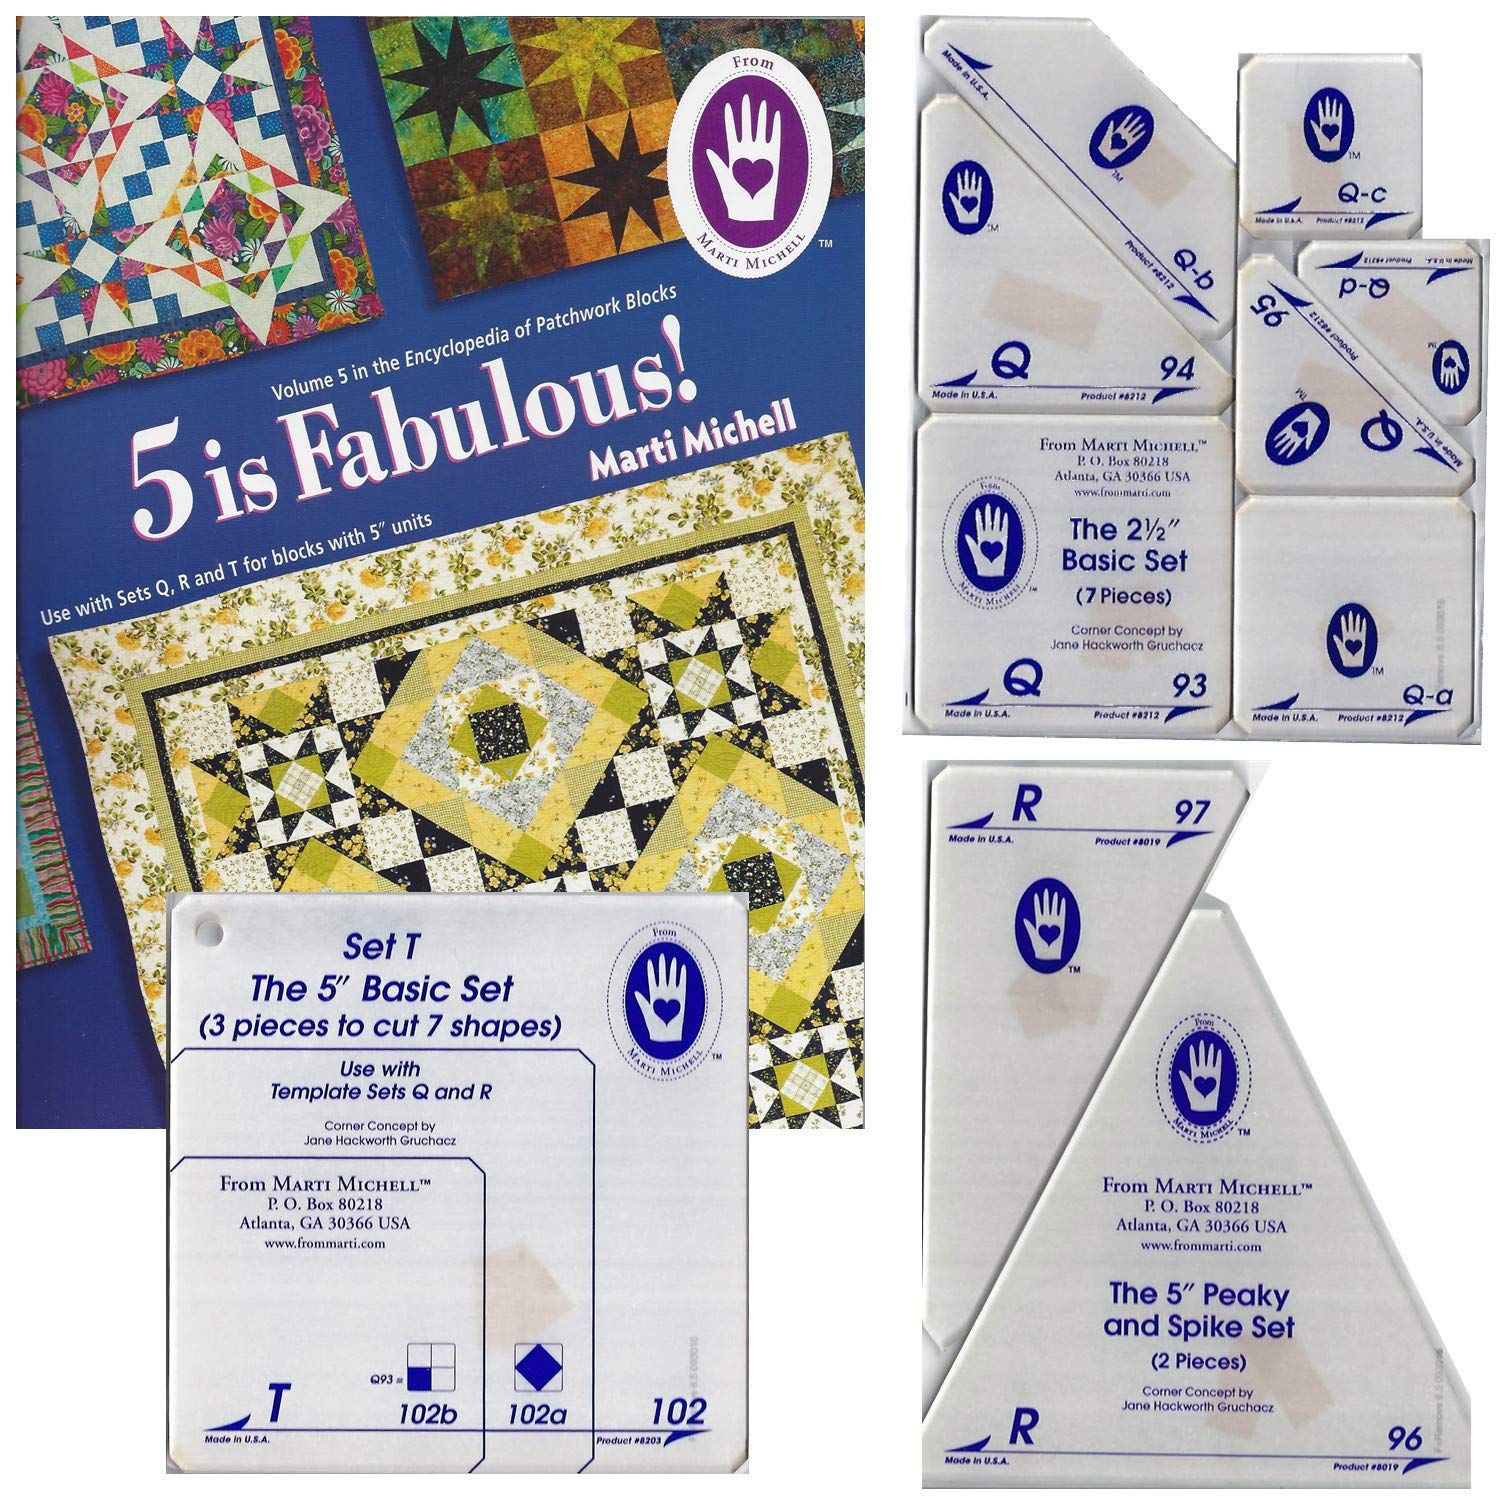 Marti Michell Easy Quilt Template Bundle for Beginner Quilting - 4 Items: Volume 5 Quilting Book, Template Sets Q, R, T by Marti Michell